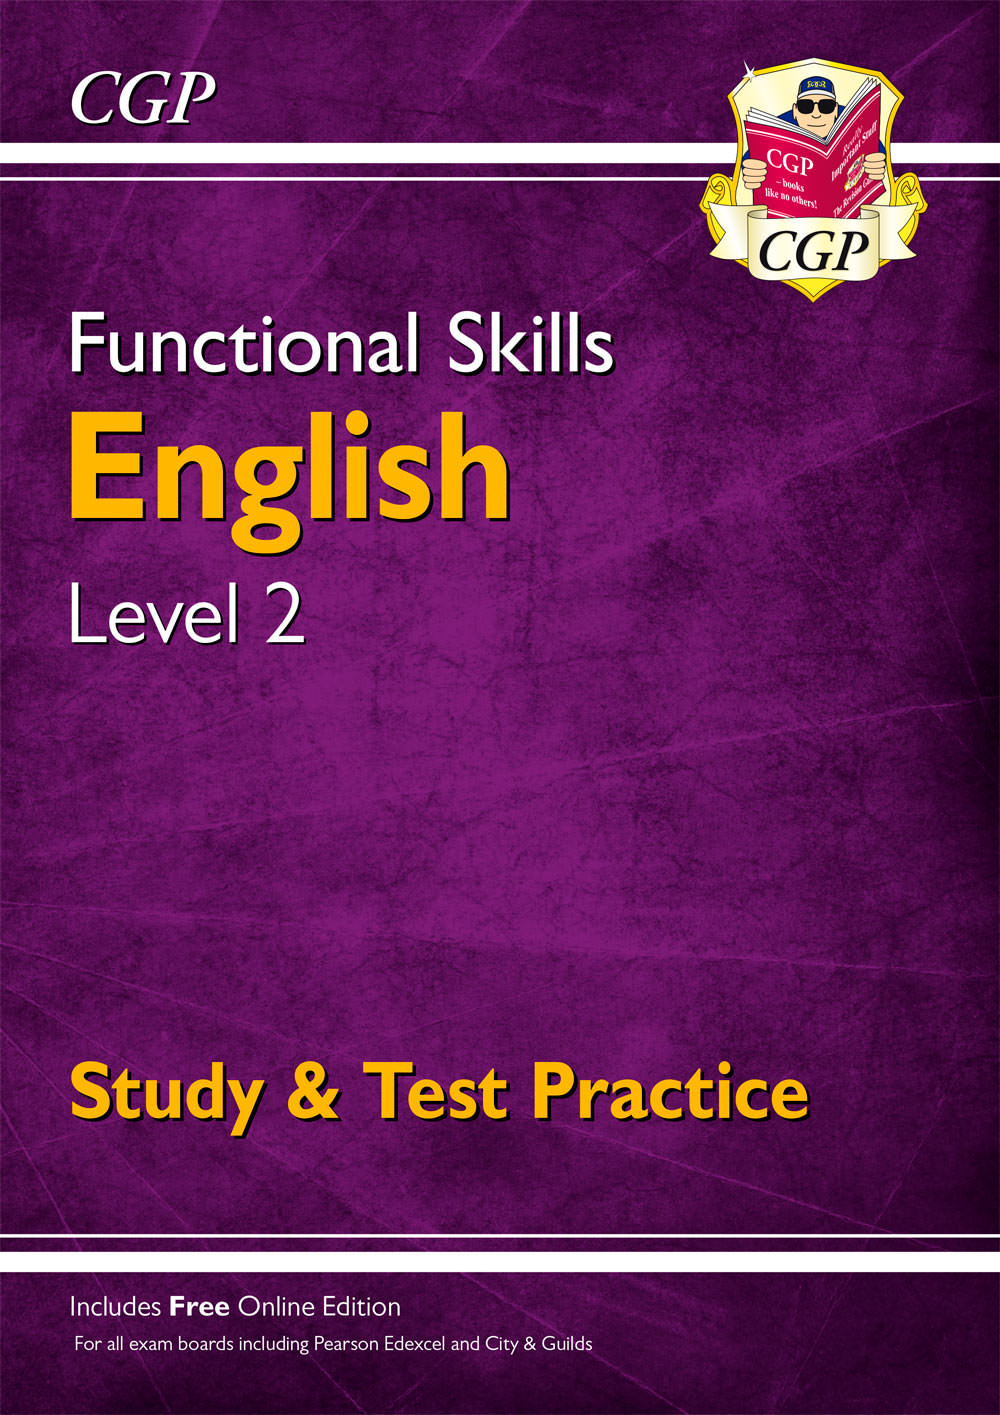 E2SRA3 - Functional Skills English Level 2 - Study & Test Practice (for 2021 & beyond)